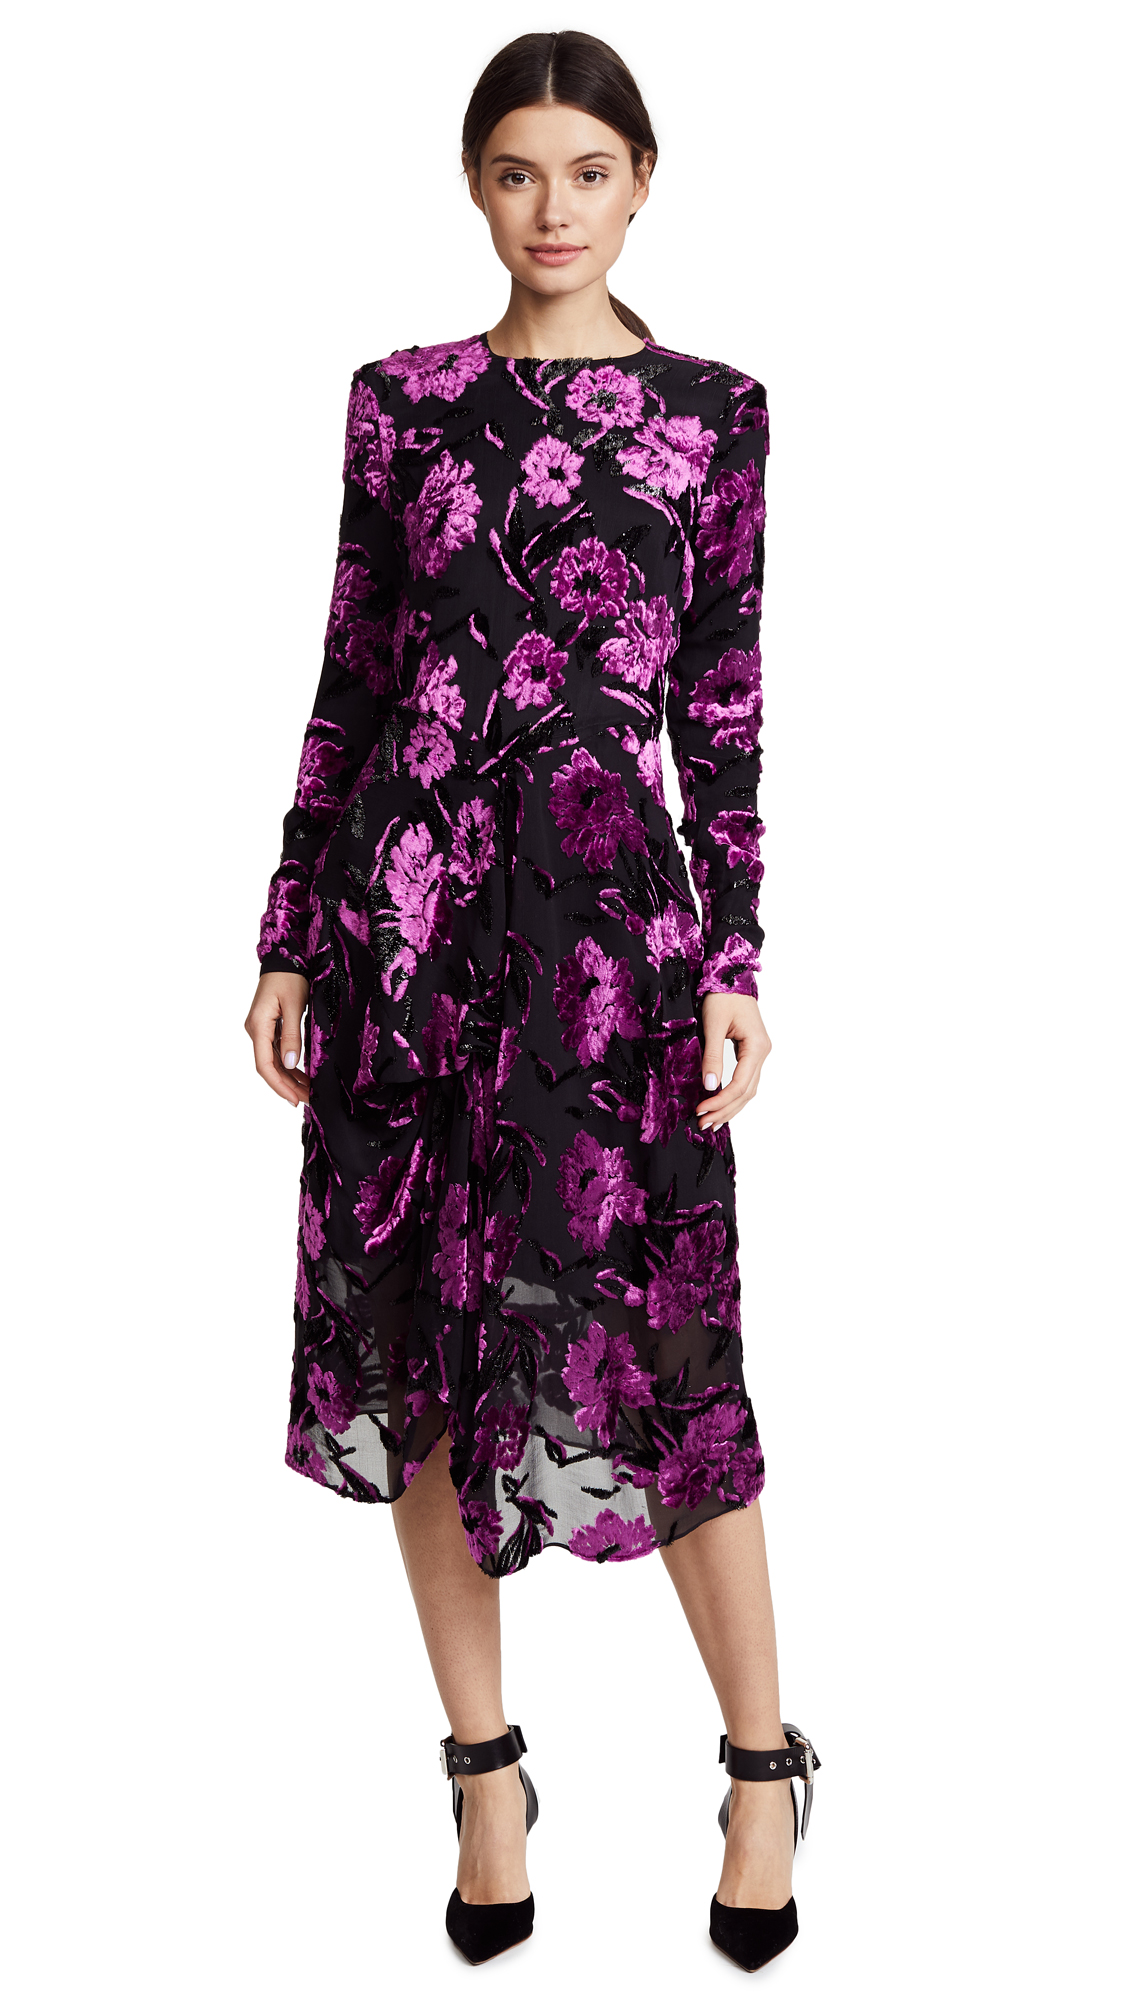 Preen By Thornton Bregazzi Alyssa Dress with Black Silk Slip